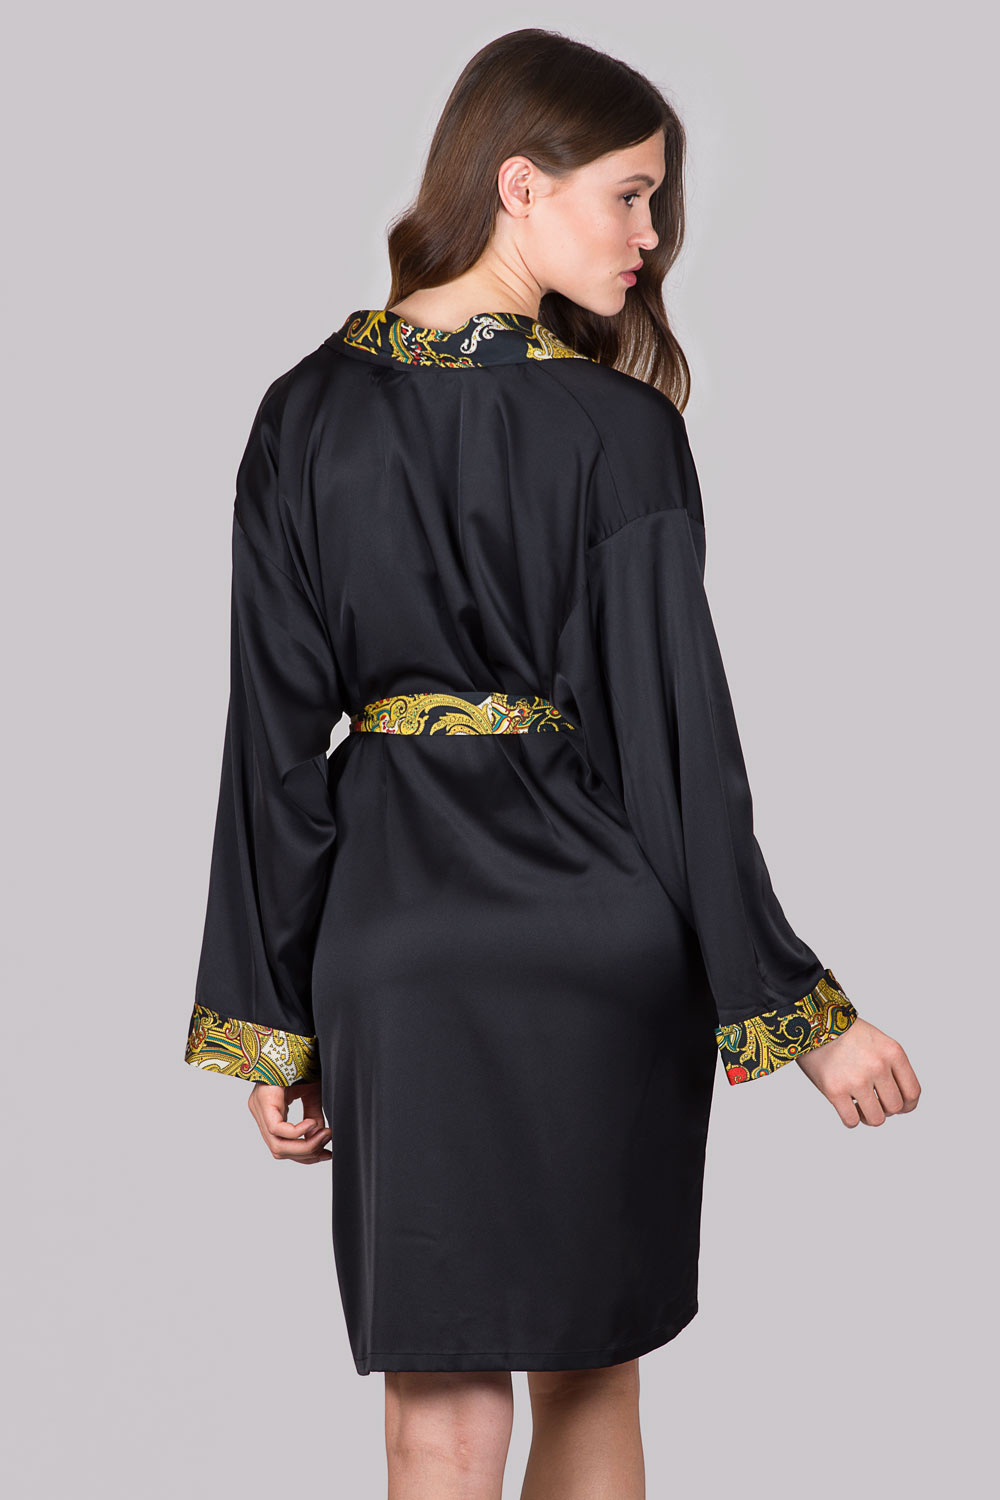 Photo Satin Dressing gown - black silky robe with print long sleeve XS to XXL